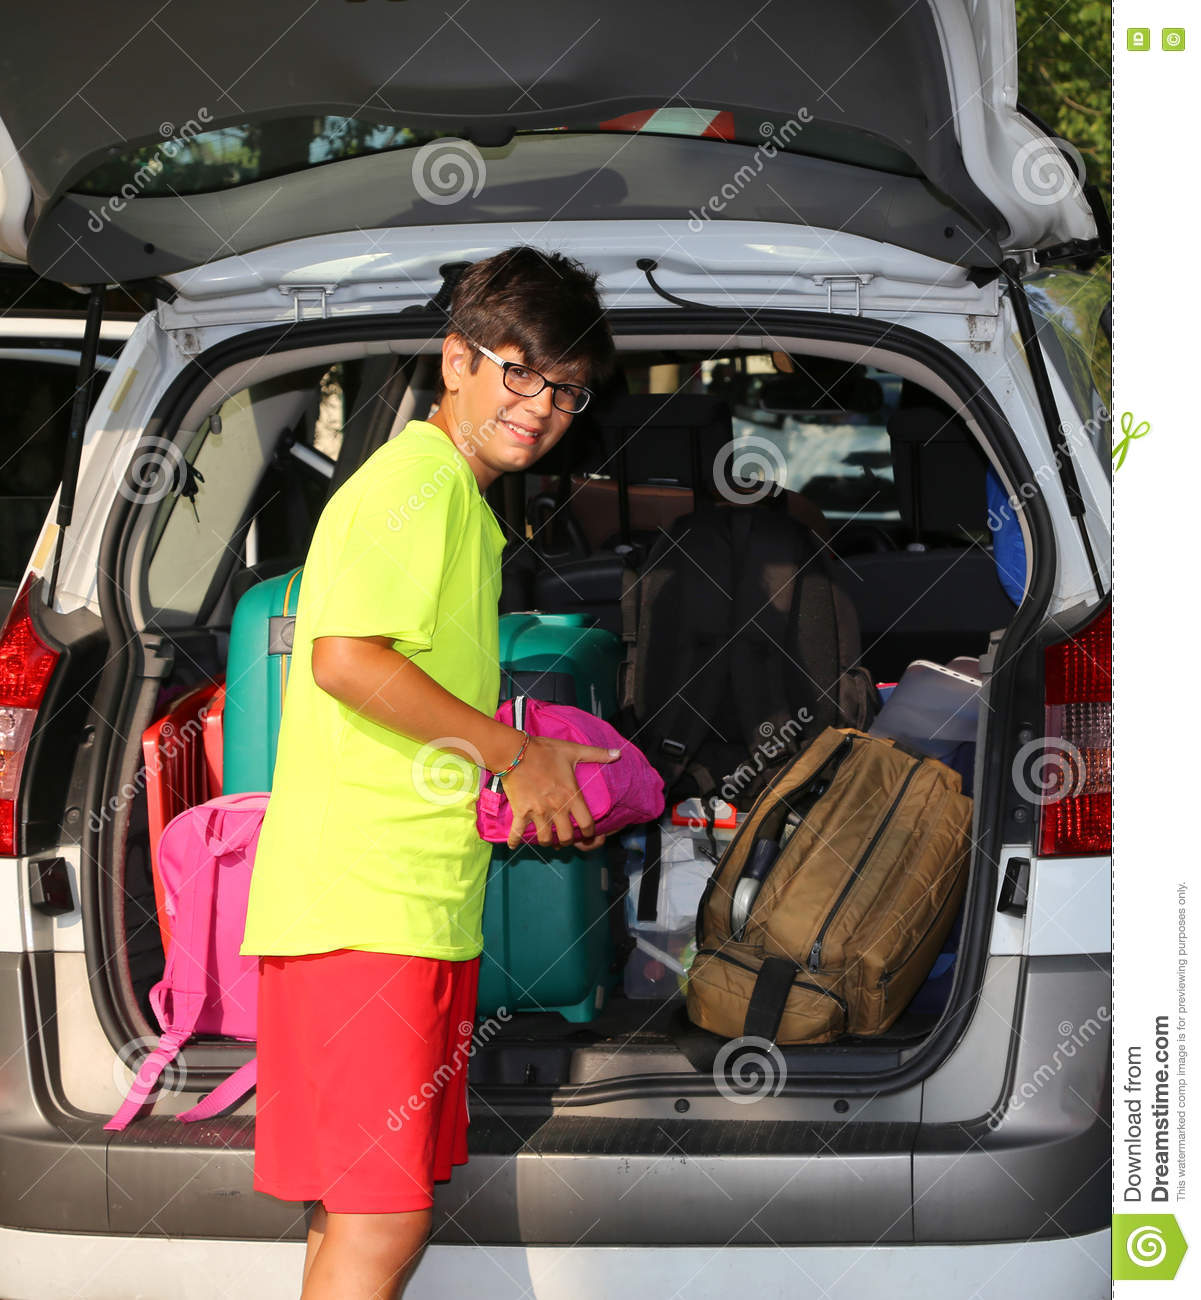 family car loaded with luggage on holiday royalty free stock photo 23584683. Black Bedroom Furniture Sets. Home Design Ideas